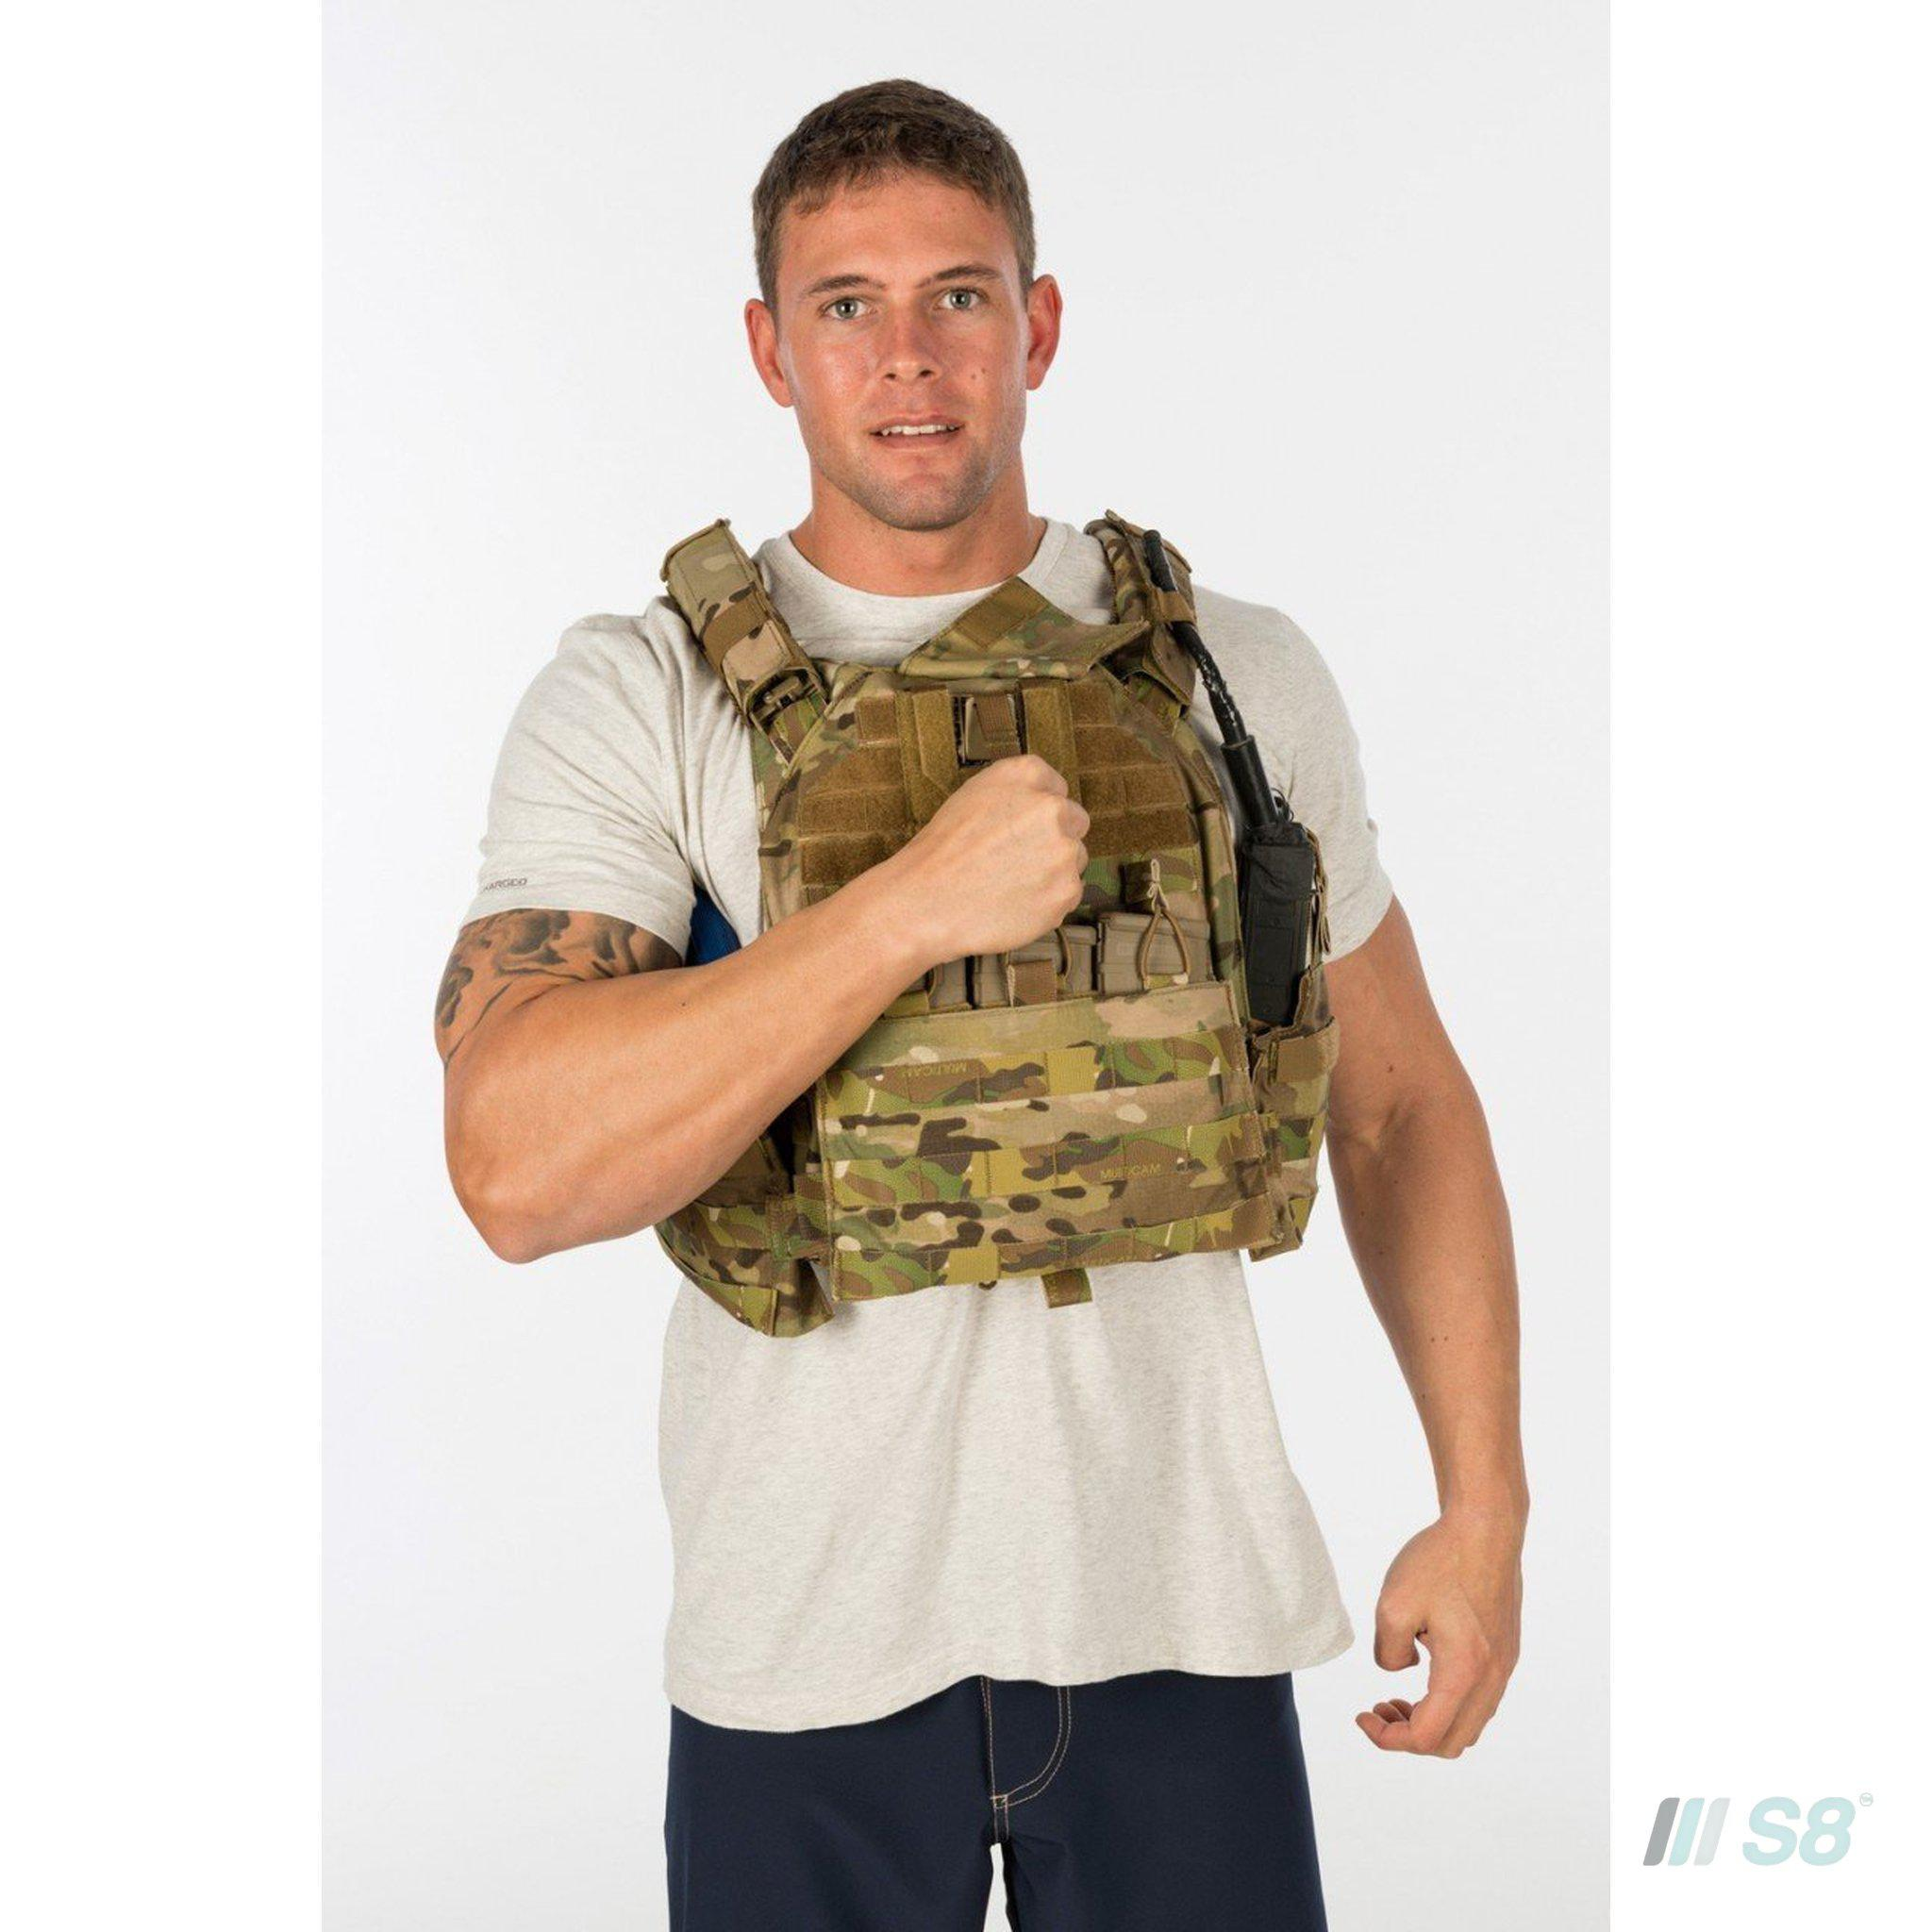 T3 Geronimo 2 Plate Carrier with Quad Release System-T3-S8 Products Group